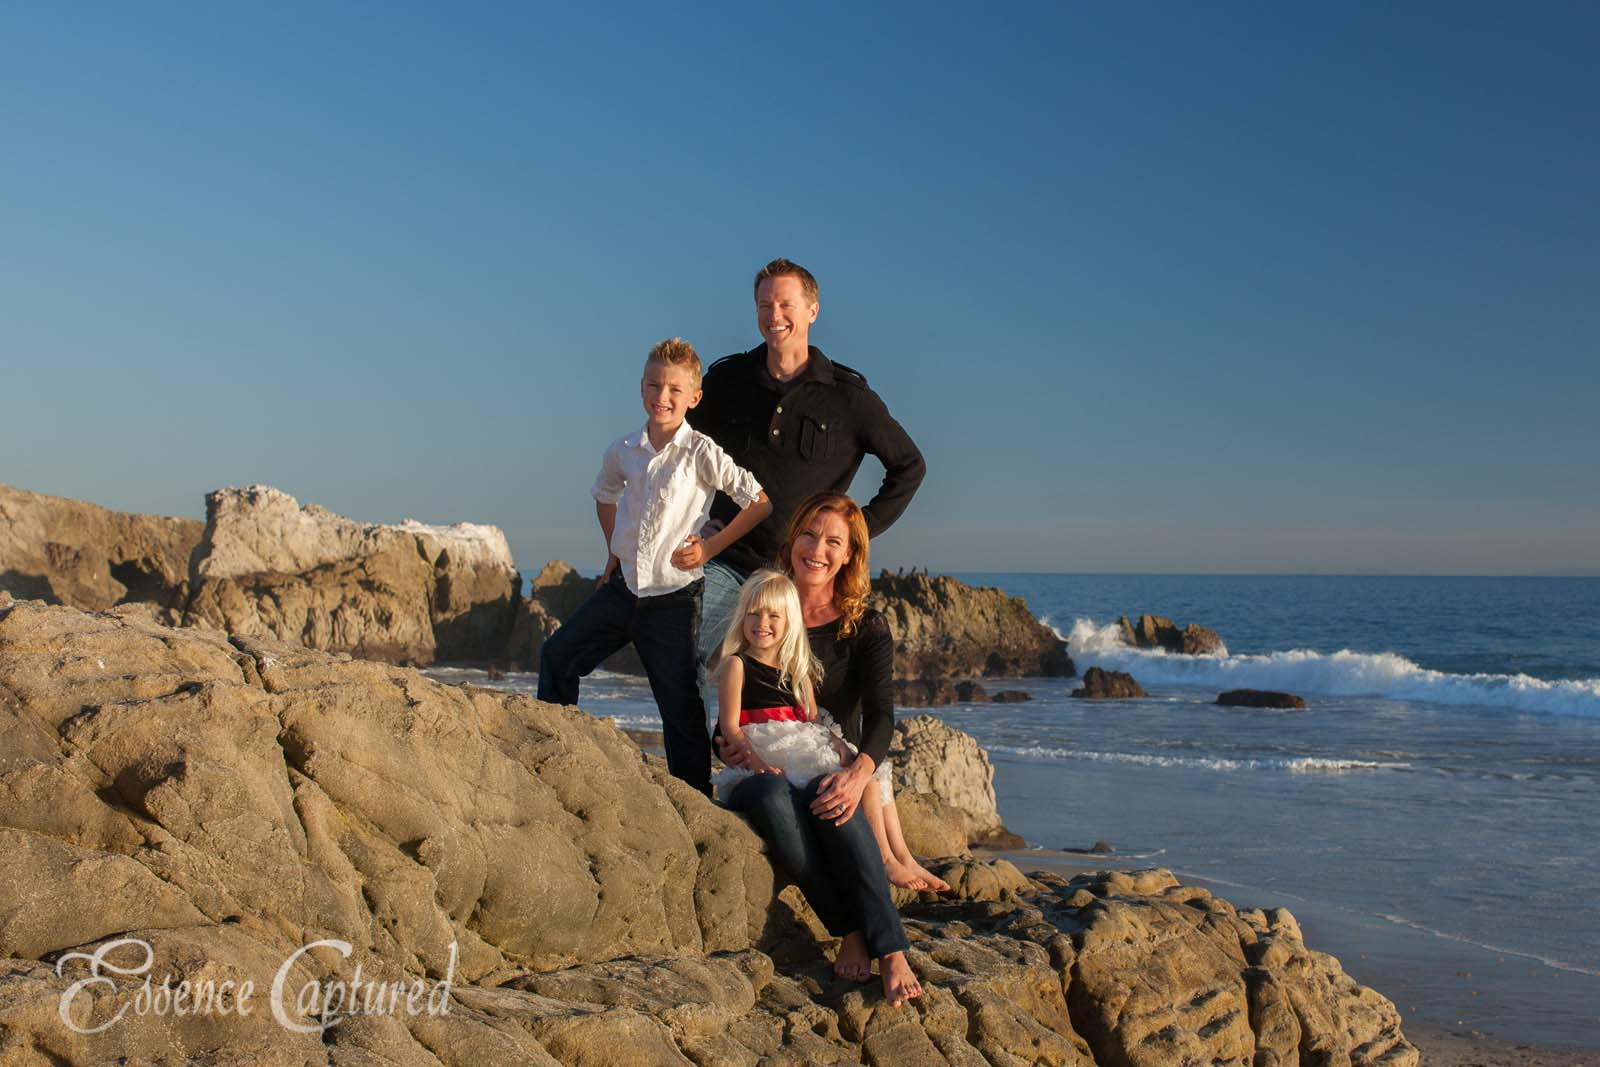 family portrait beach rocks ocean mom dad sister brother